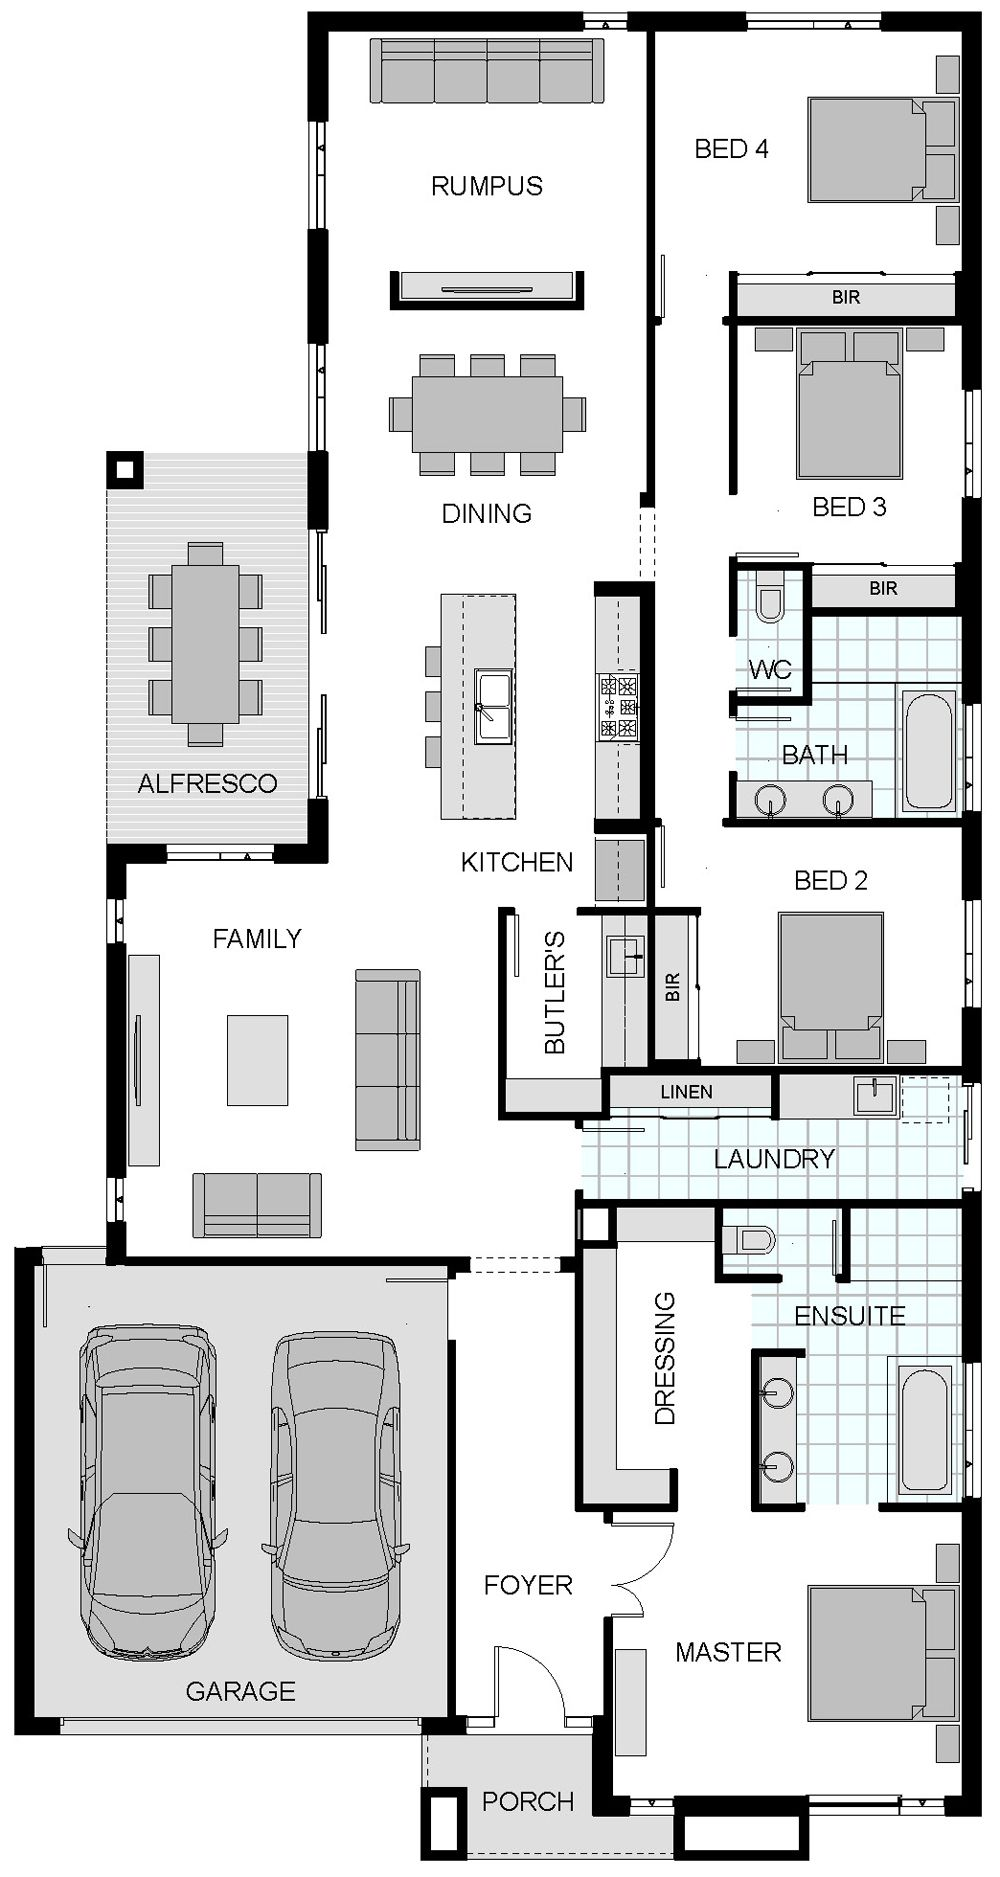 Home Dream House Plans 4 Bedroom House Plans House Floor Plans